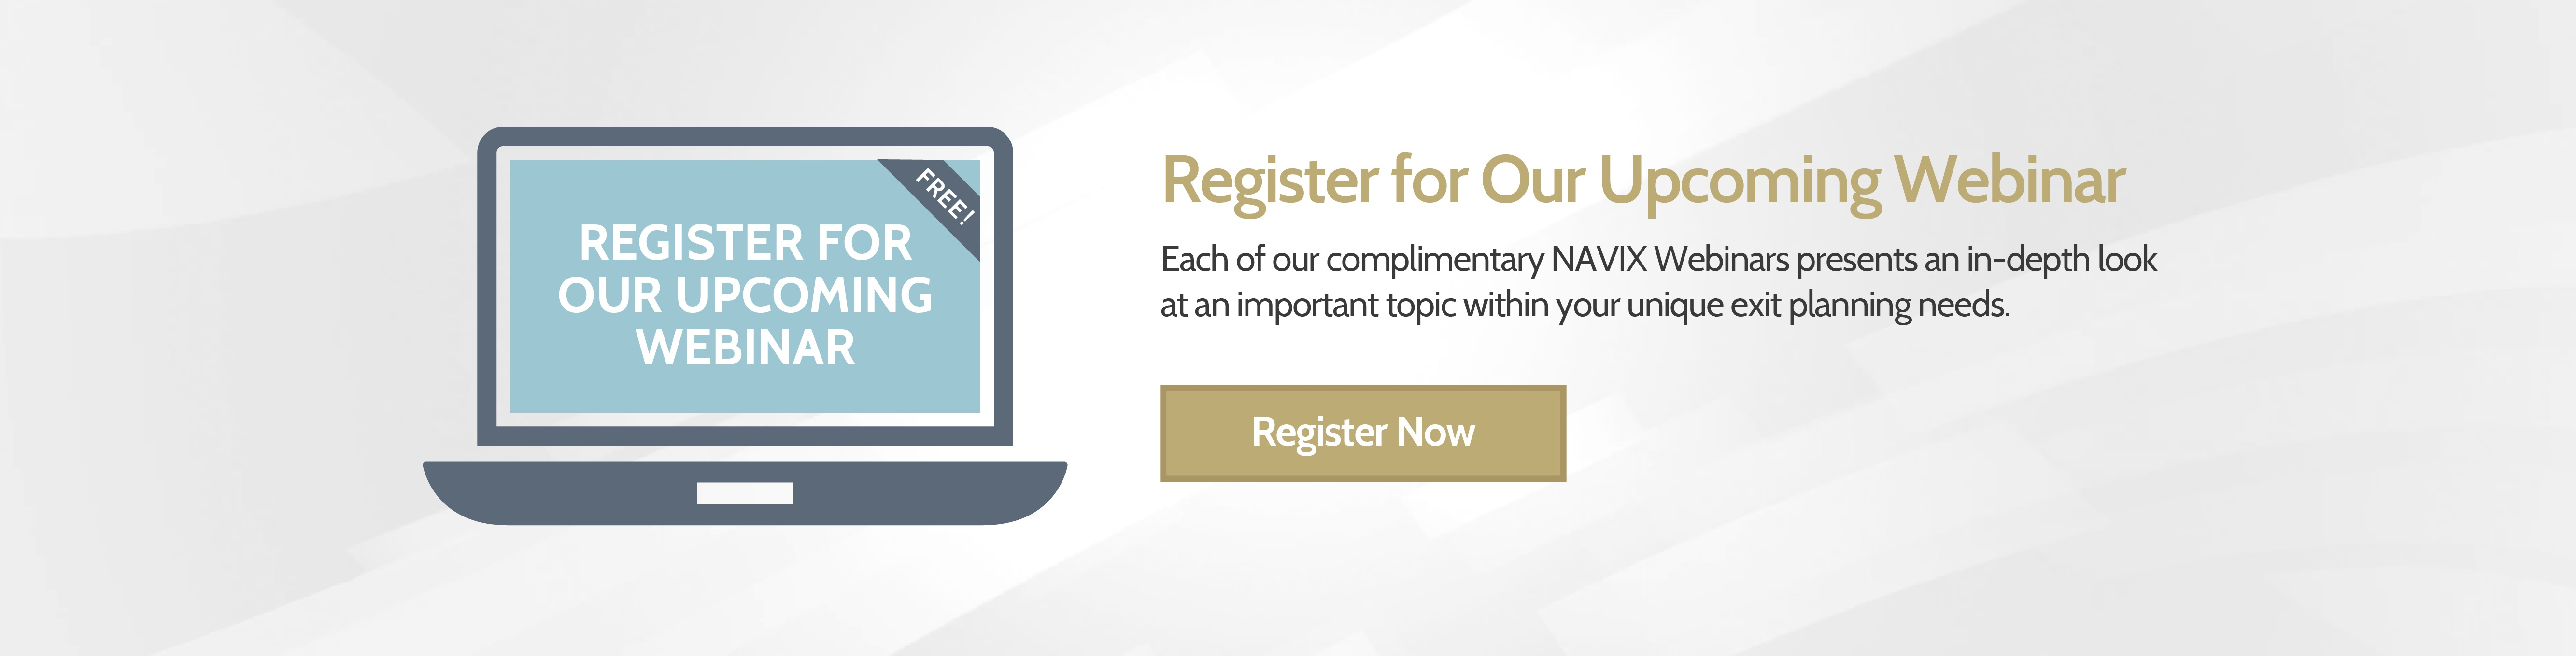 Register for Our Upcoming Webinar